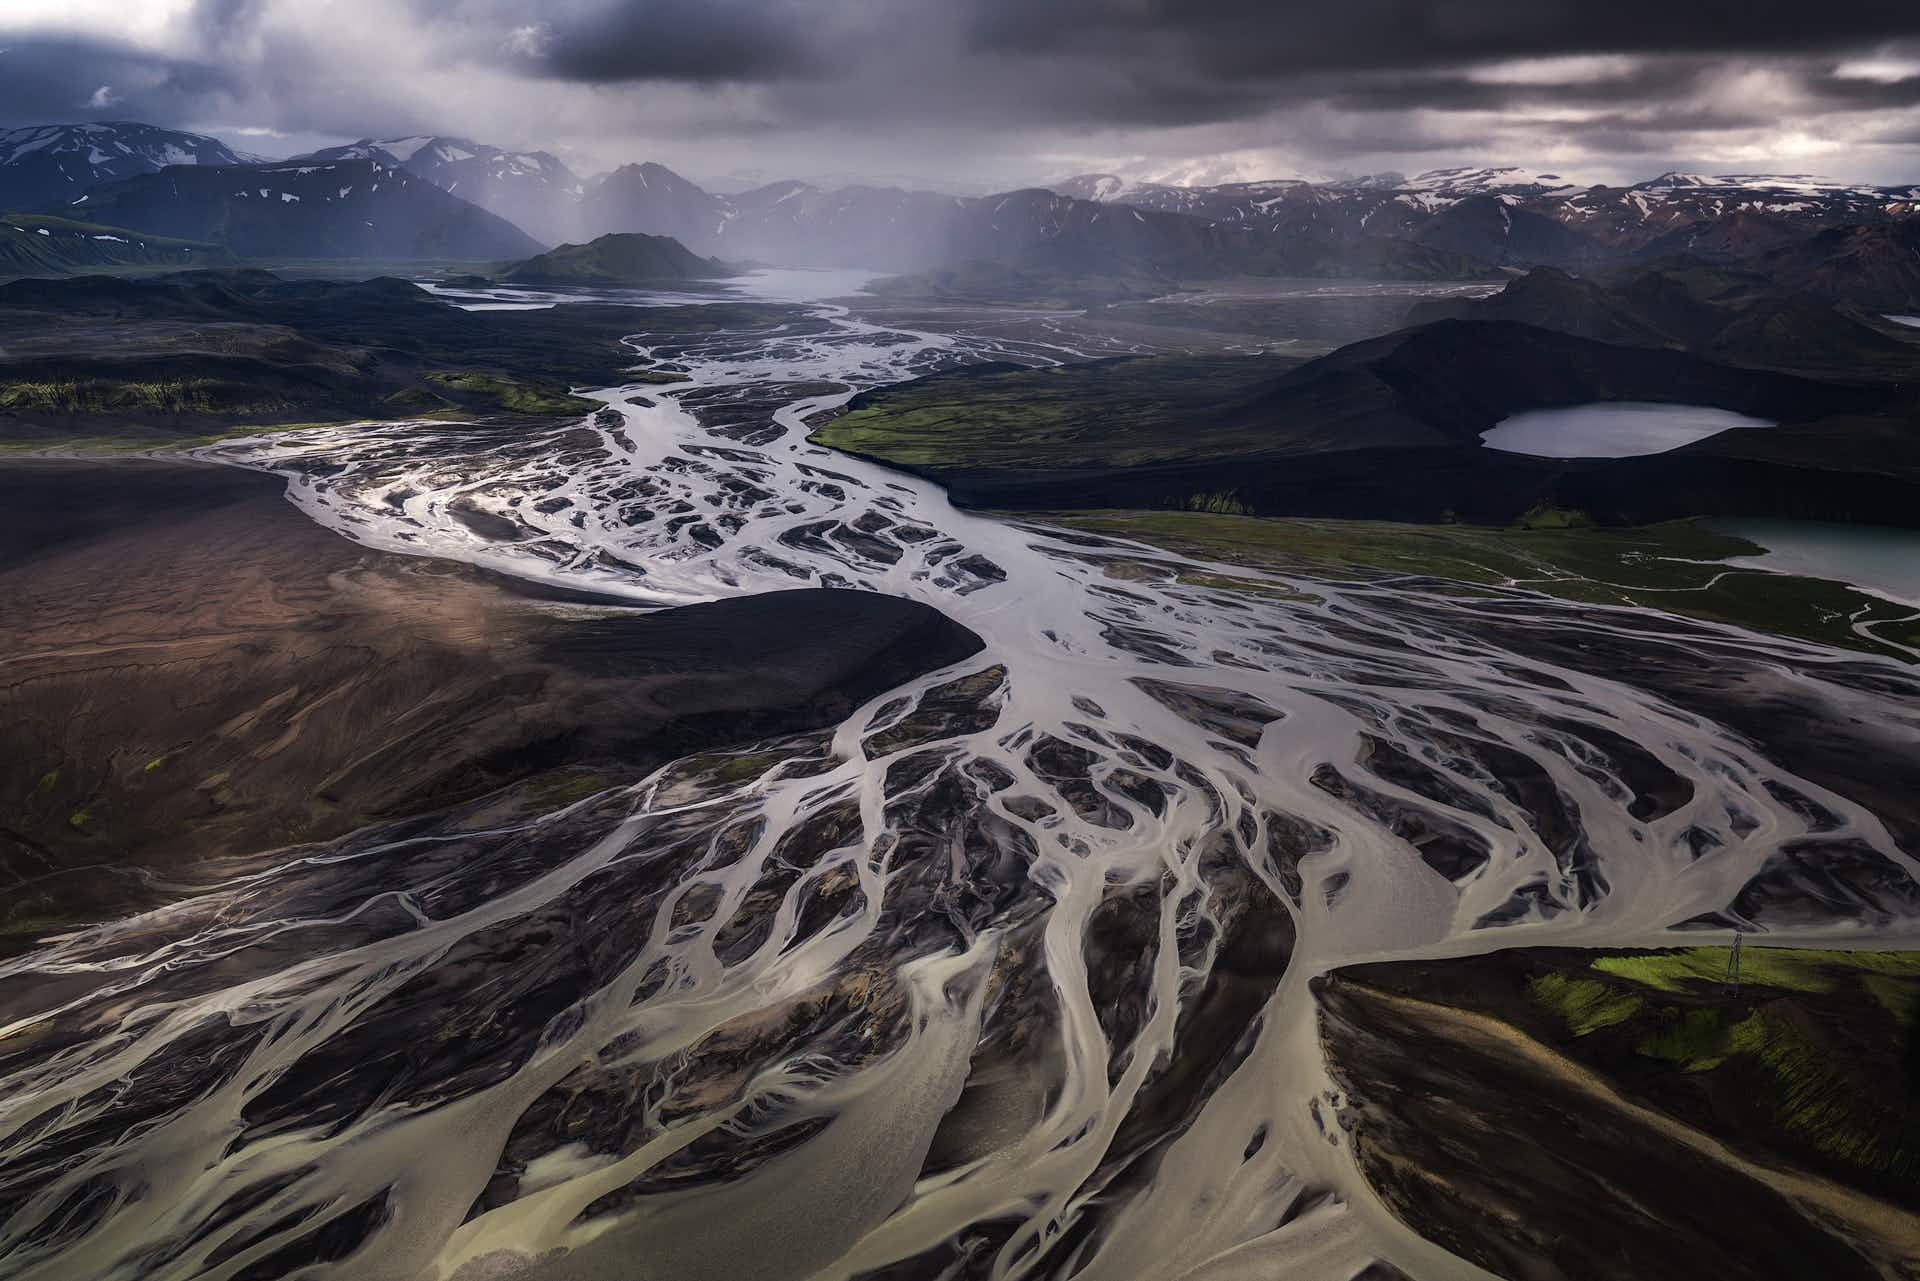 Iceland proves why it's a Game of Thrones setting in these incredible images